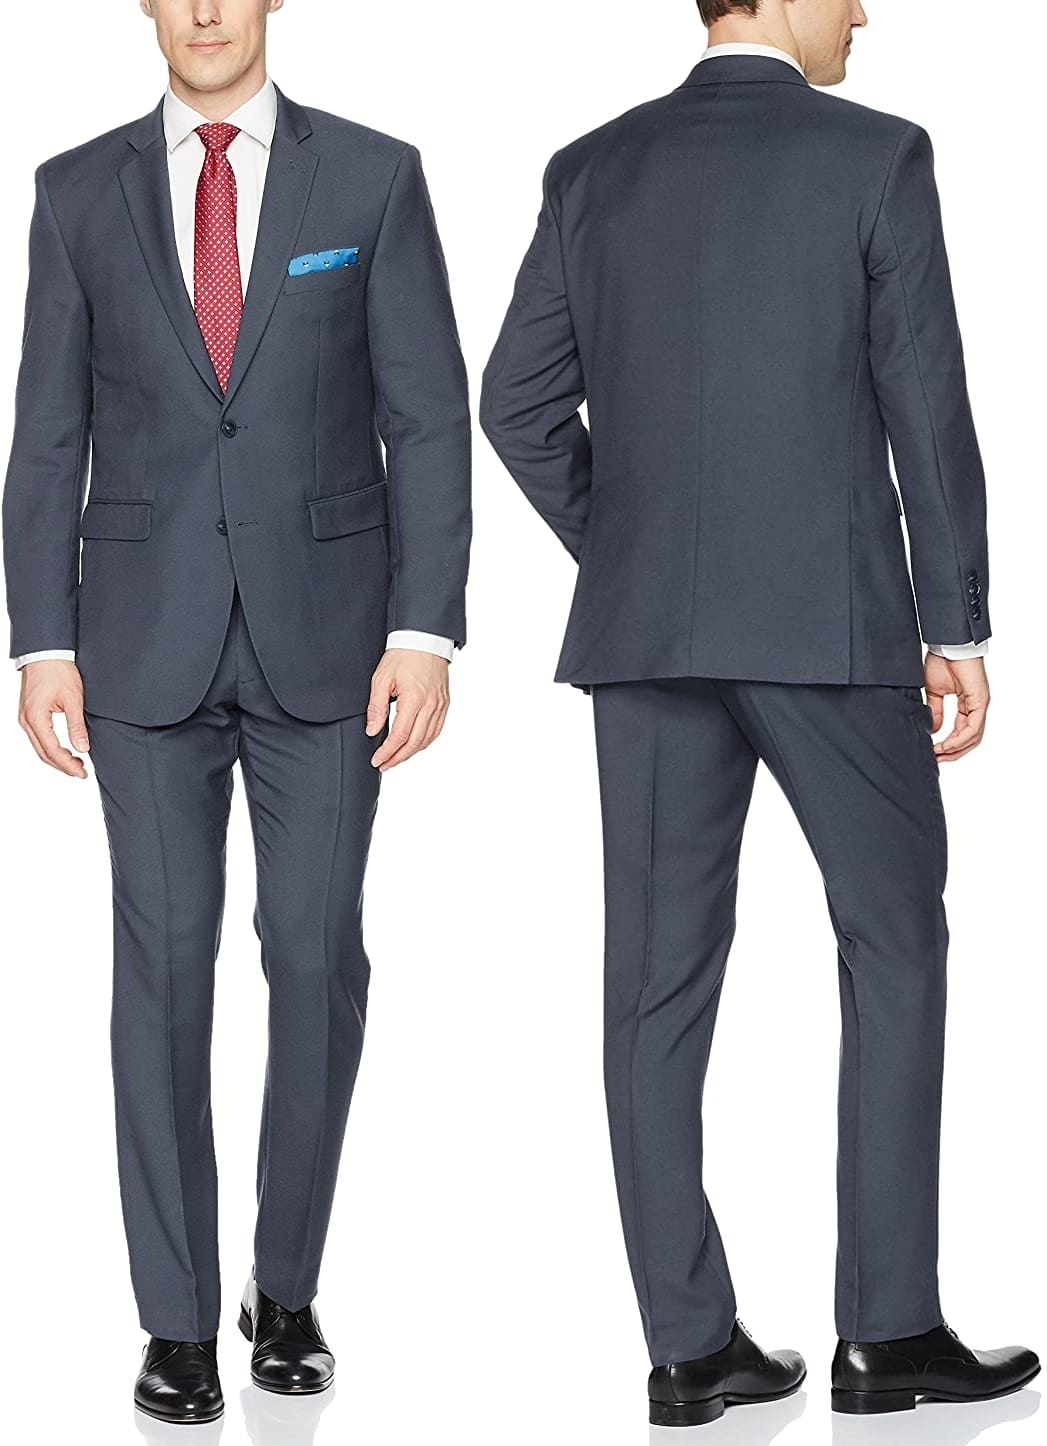 Wearing a neat, tailored black suit like the Perry Ellis suit set is a general rule for men